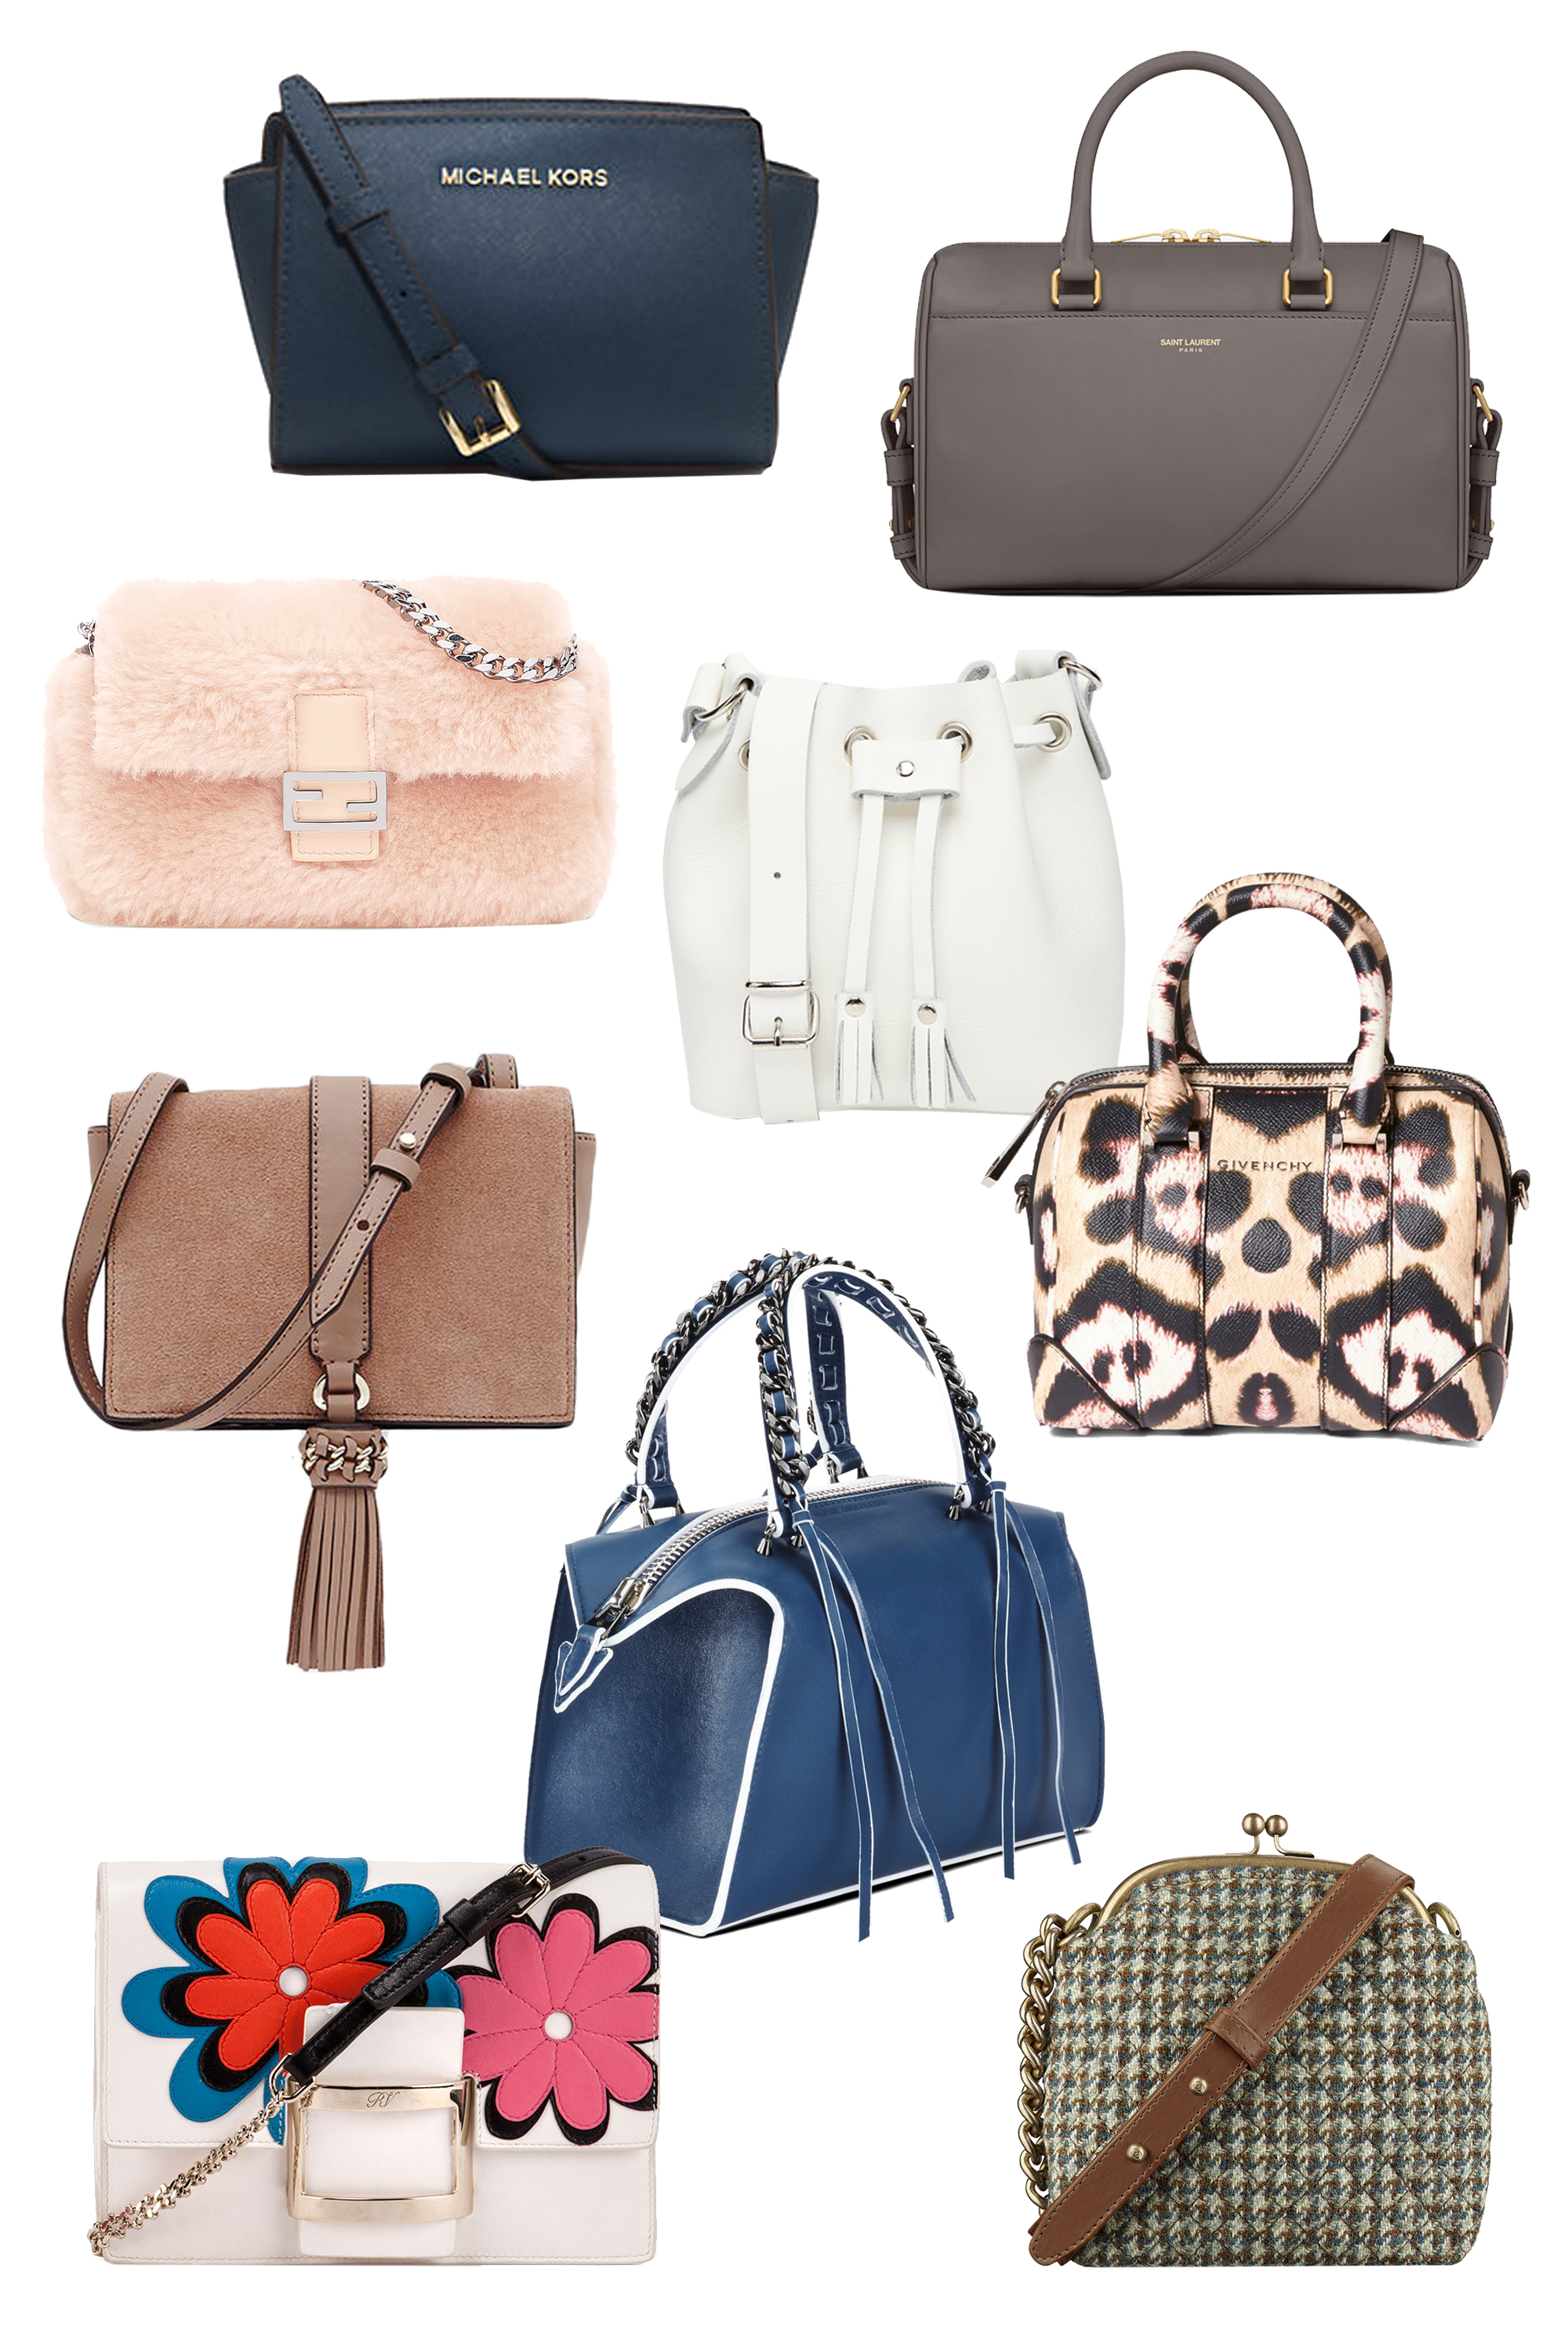 Fall Bag Trends-What Bags Should I Buy This Fall?